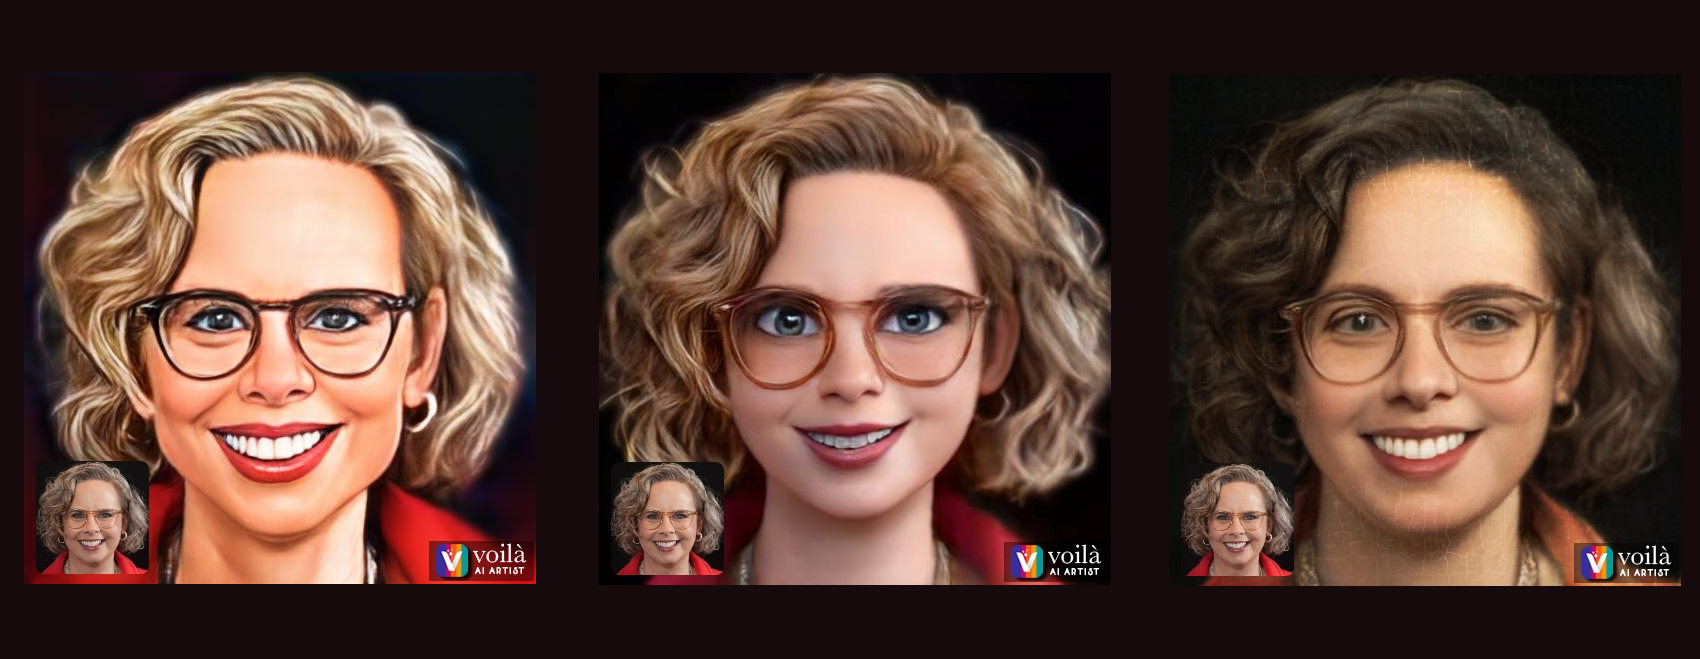 3 versions of Laura Solomon done by the Voila Ai app